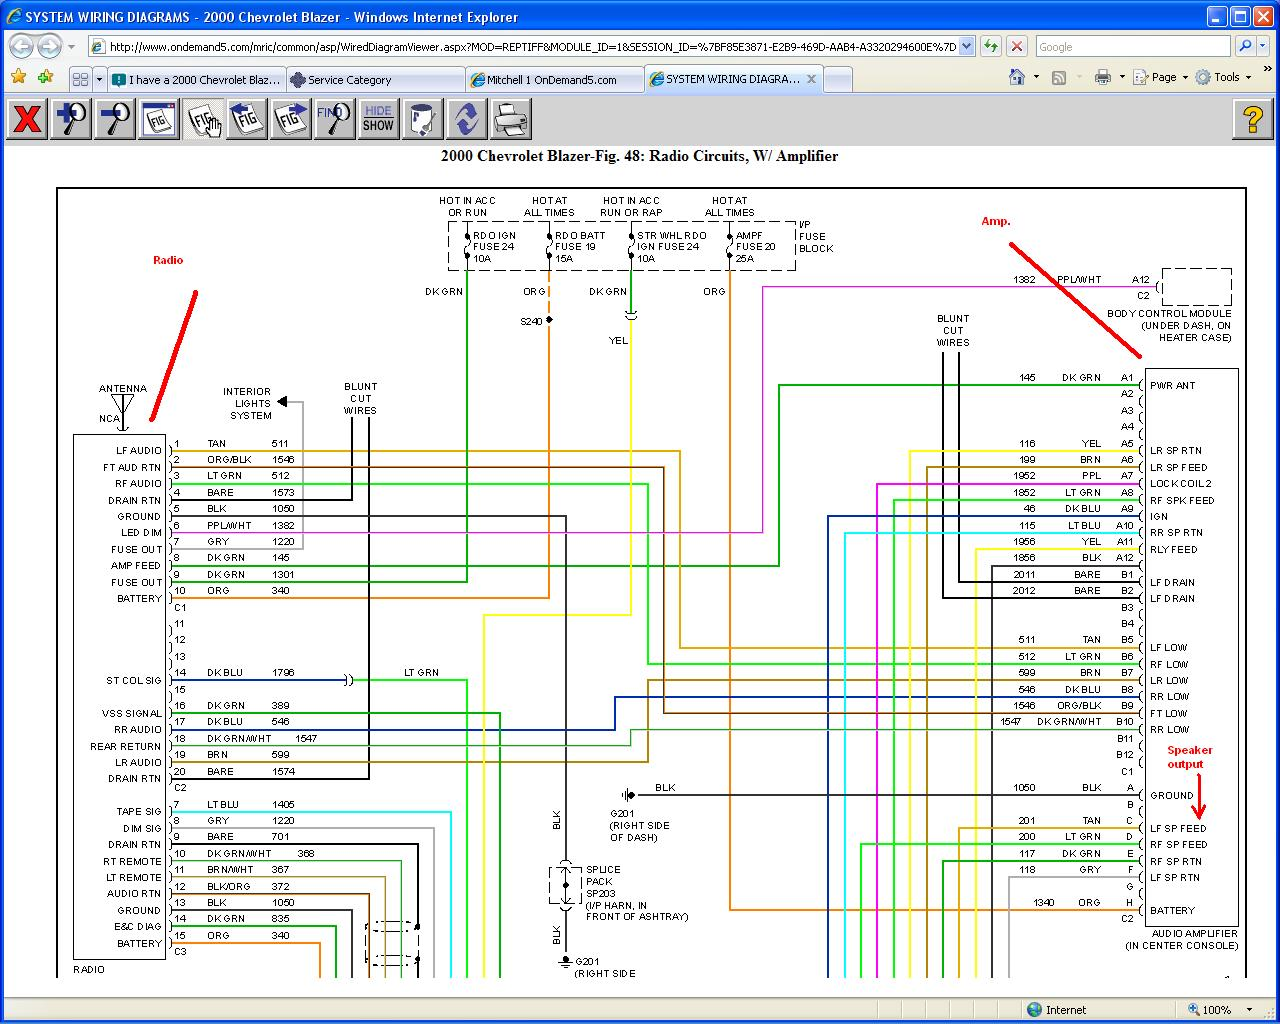 Comfortable Jem Wiring Diagram Tiny Bass Pickup Configurations Regular 2 Humbuckers In Series Hh 5 Way Switch Wiring Old Www Bulldog Com OrangeAuto Command Remote Starter Wiring Diagram Diagrams#568660: Chevy Cavalier Stereo Wiring Diagram \u2013 2000 Chevy ..